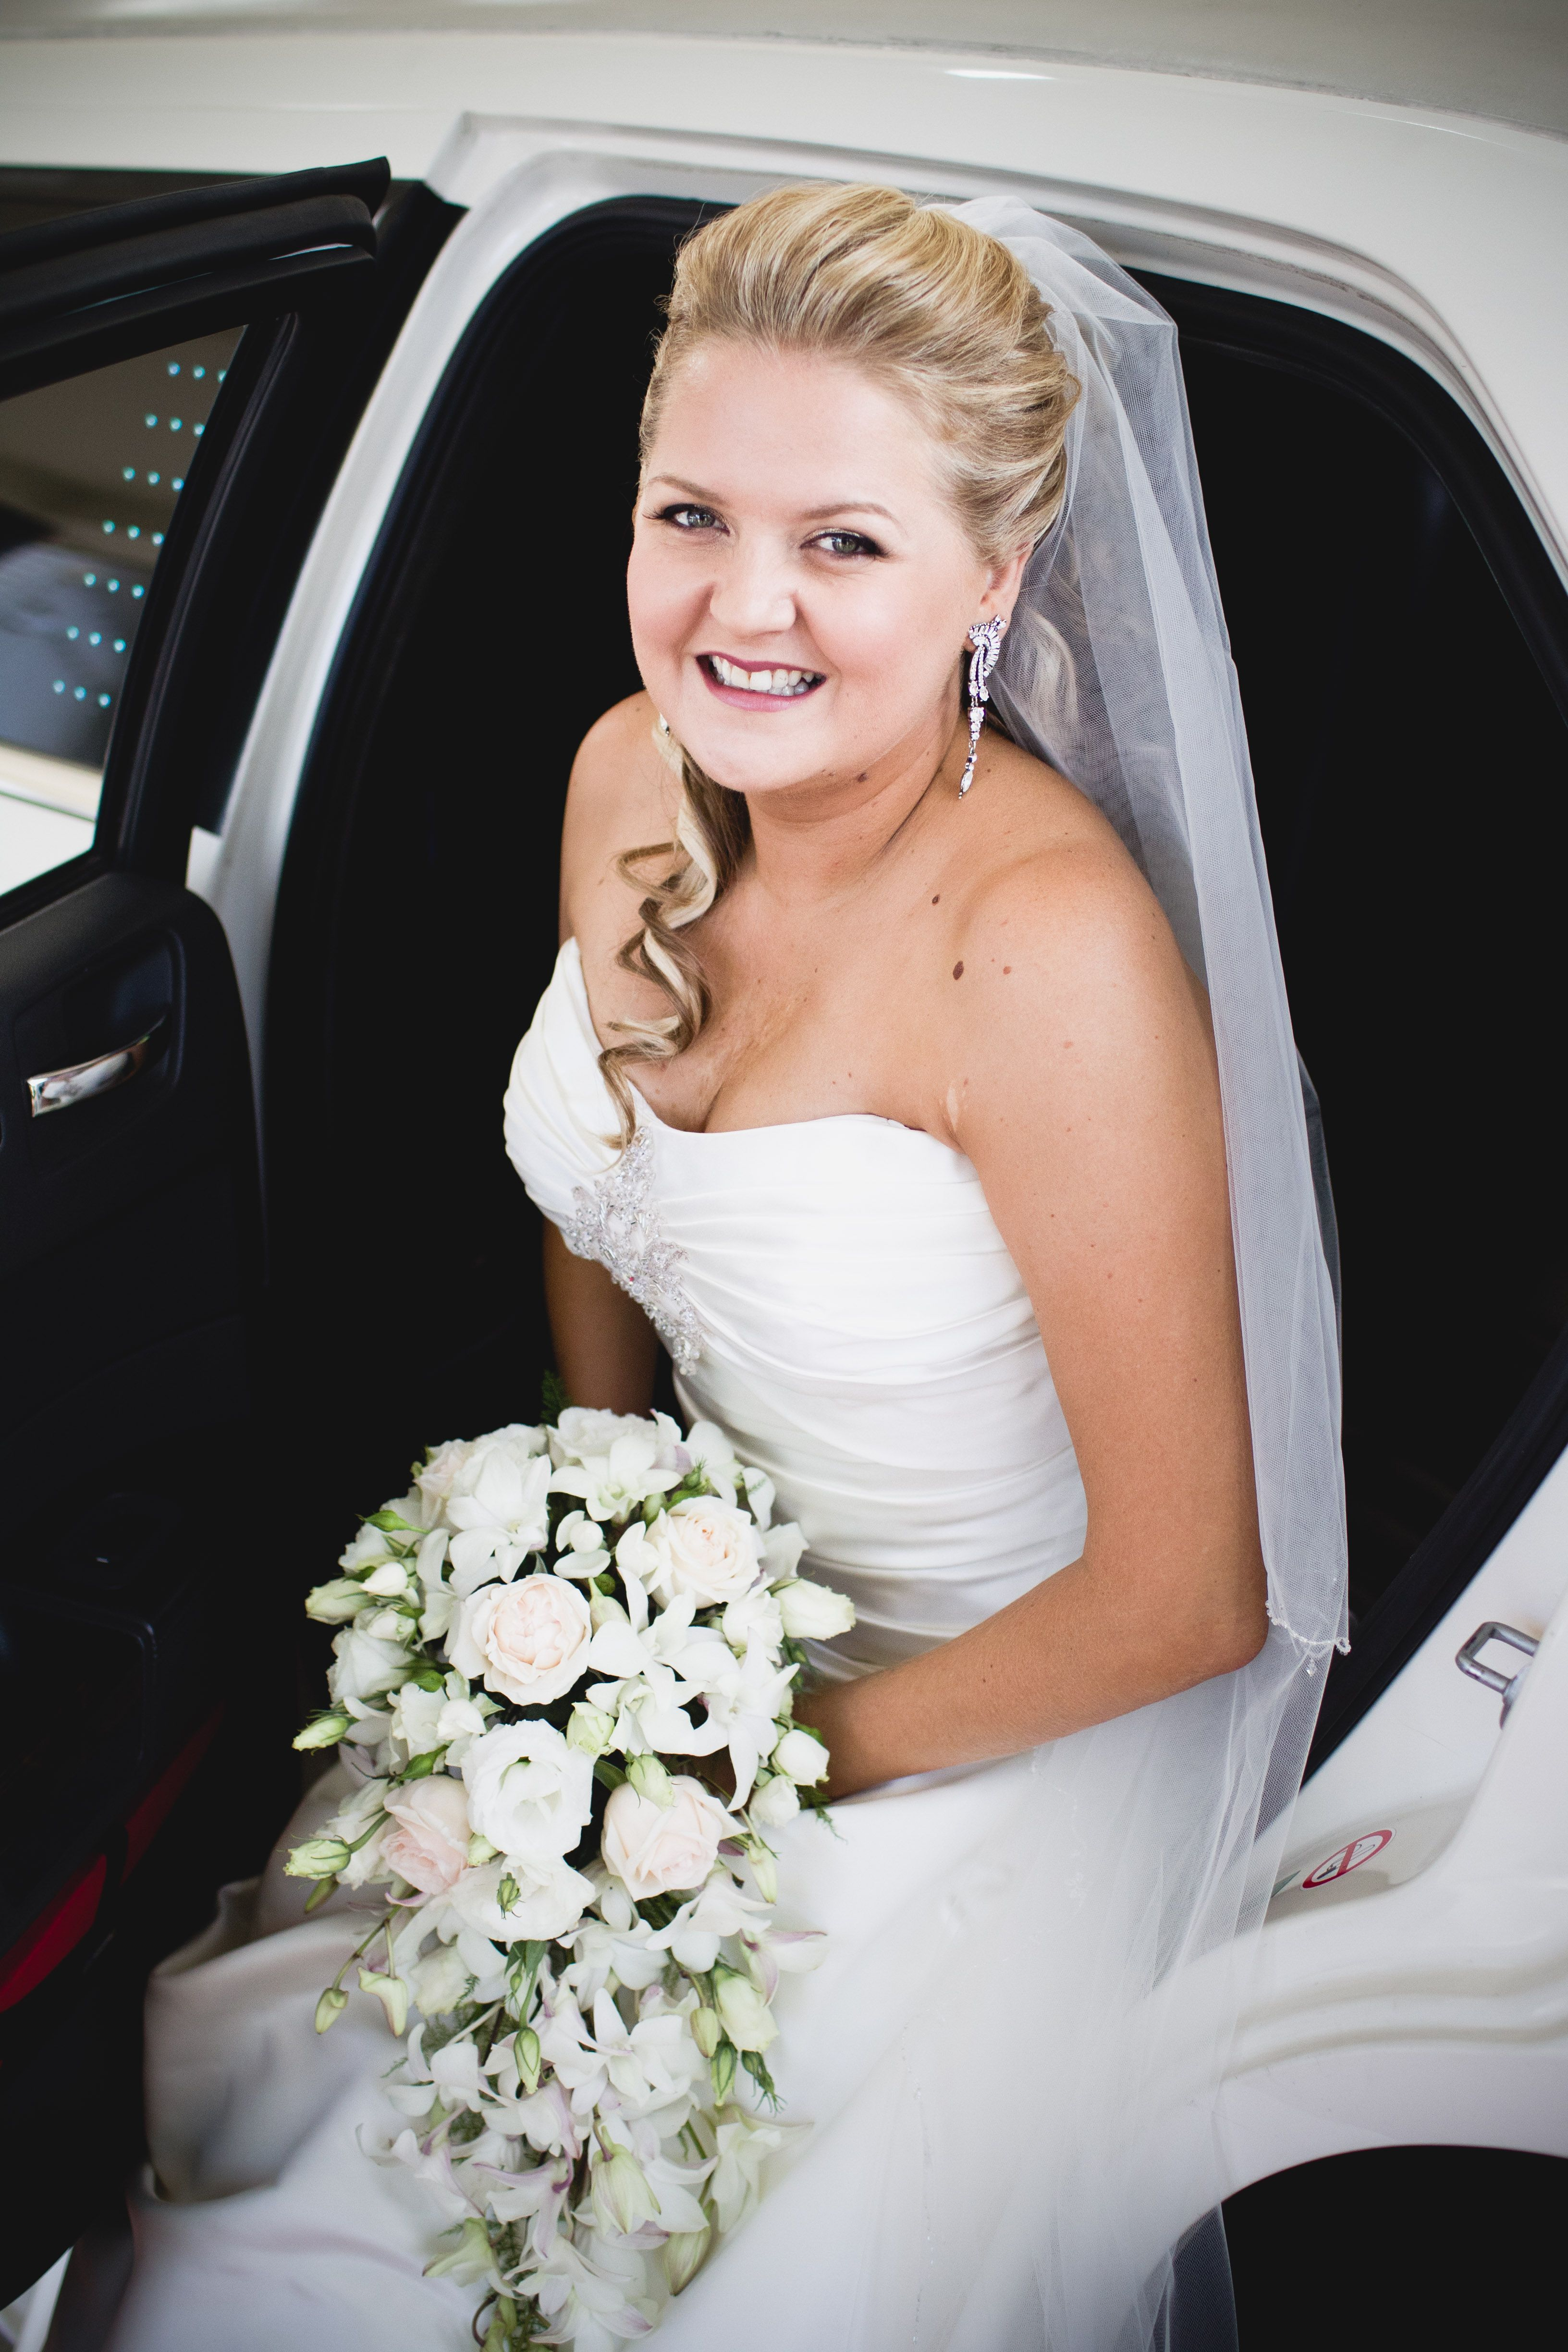 Wedding hair and make up by Canary Hair and Beauty